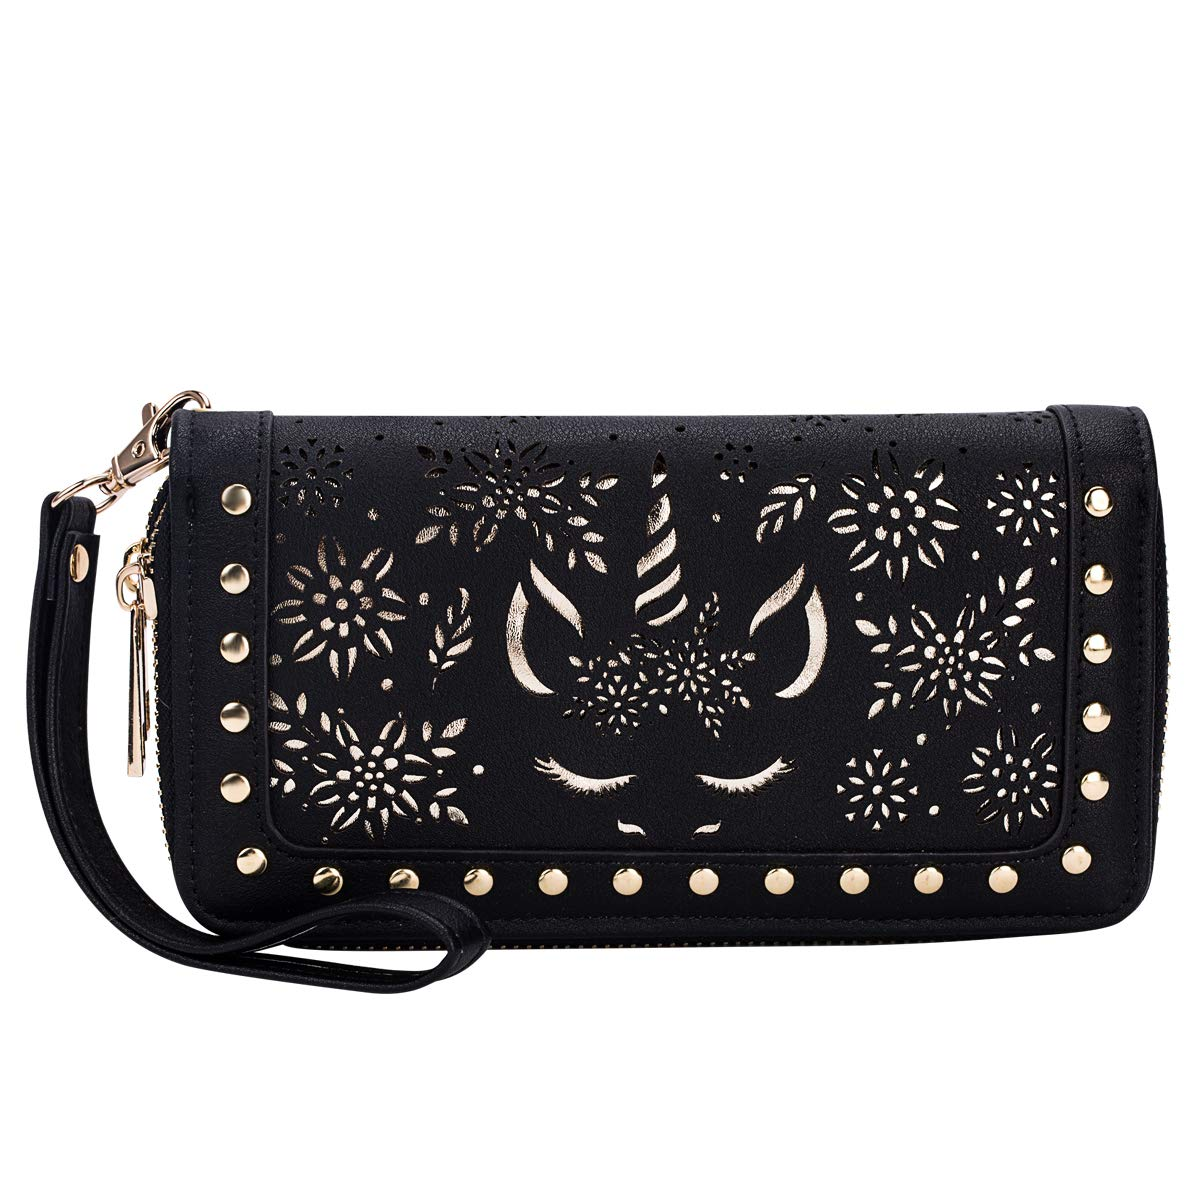 Heaye Unicorn Wallet Hollow Floral Wristlet Zip Around Pouch with Perforated Stud RFID Blocking by Heaye